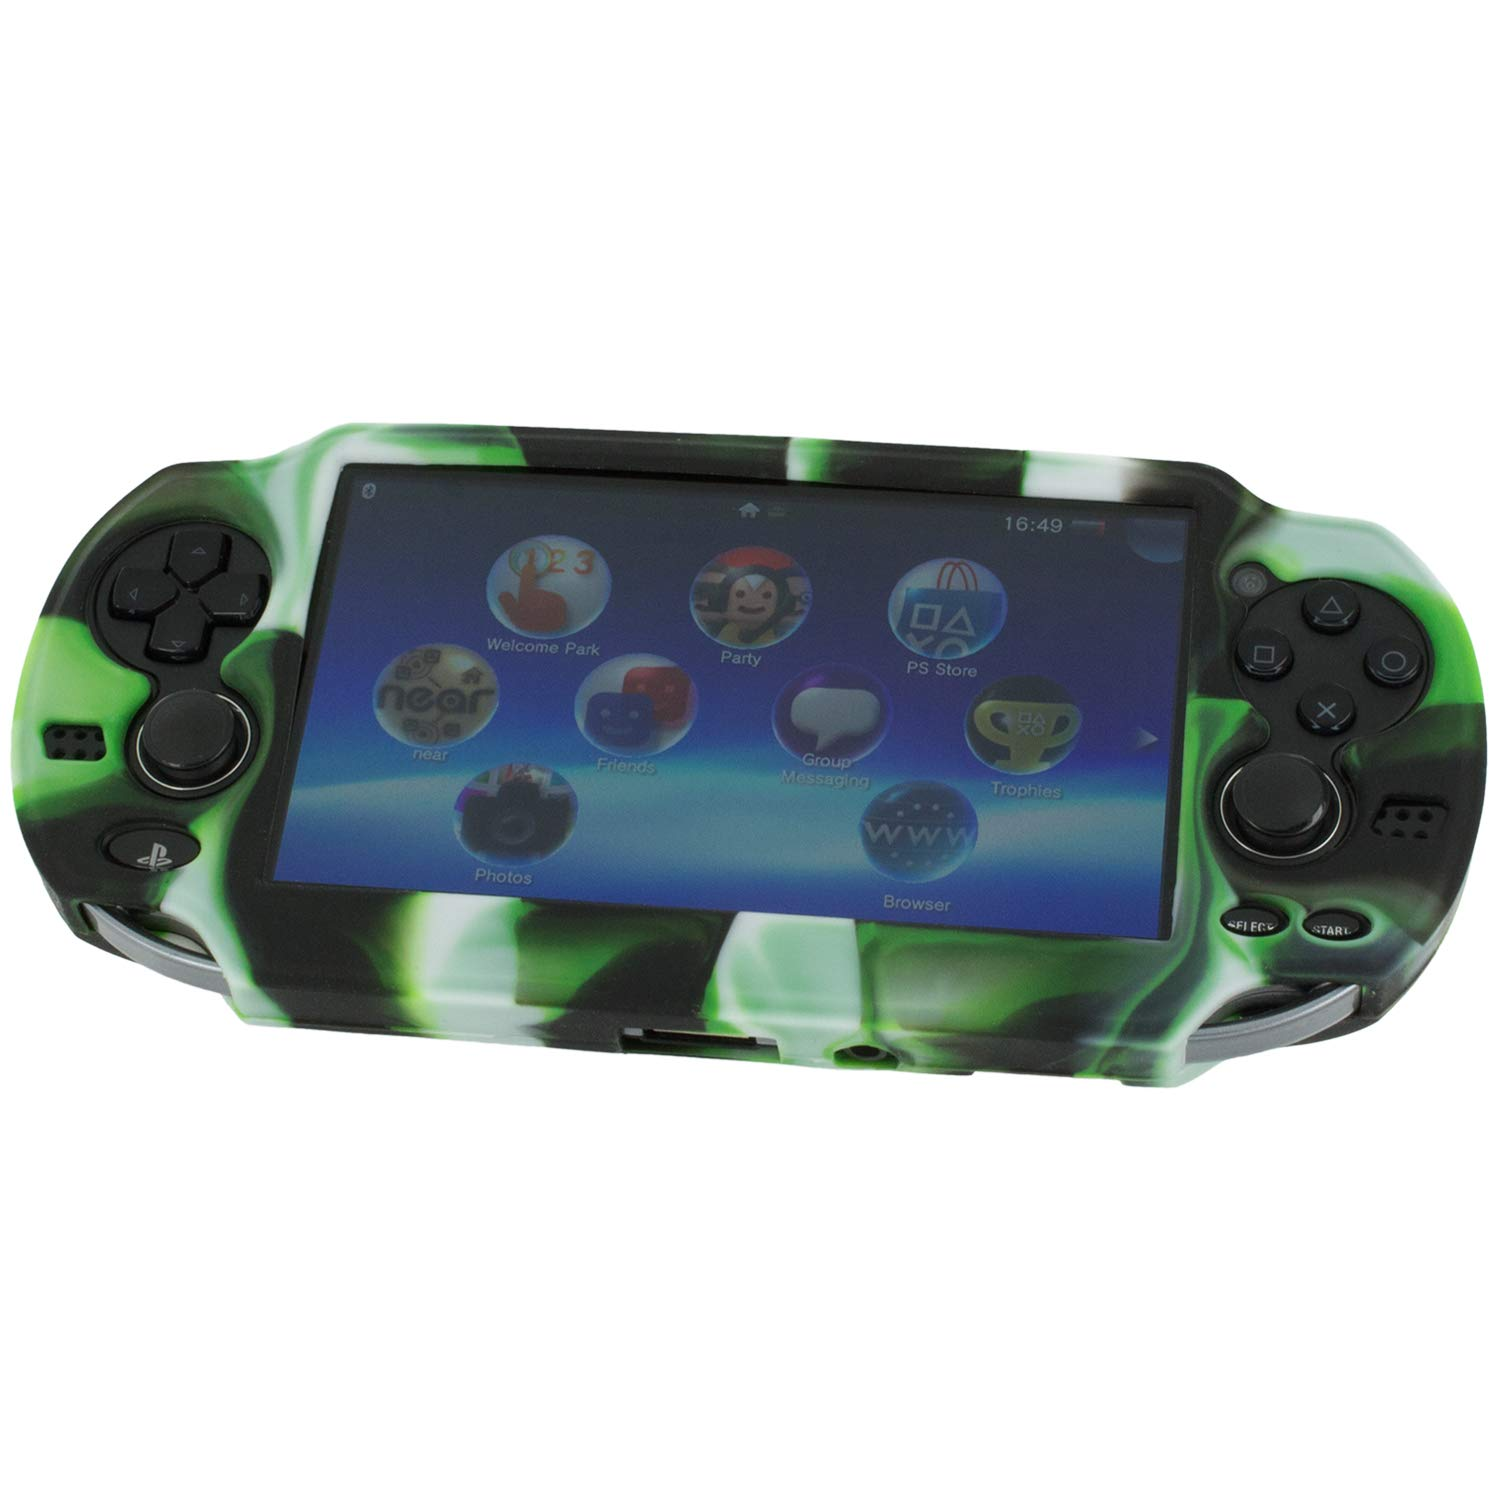 Assecure Pro Camouflage Silicone Gel Skin Protector Cover Protective Camo Rubber Bumper Grip Case for Sony PS Vita (PSP PSV)